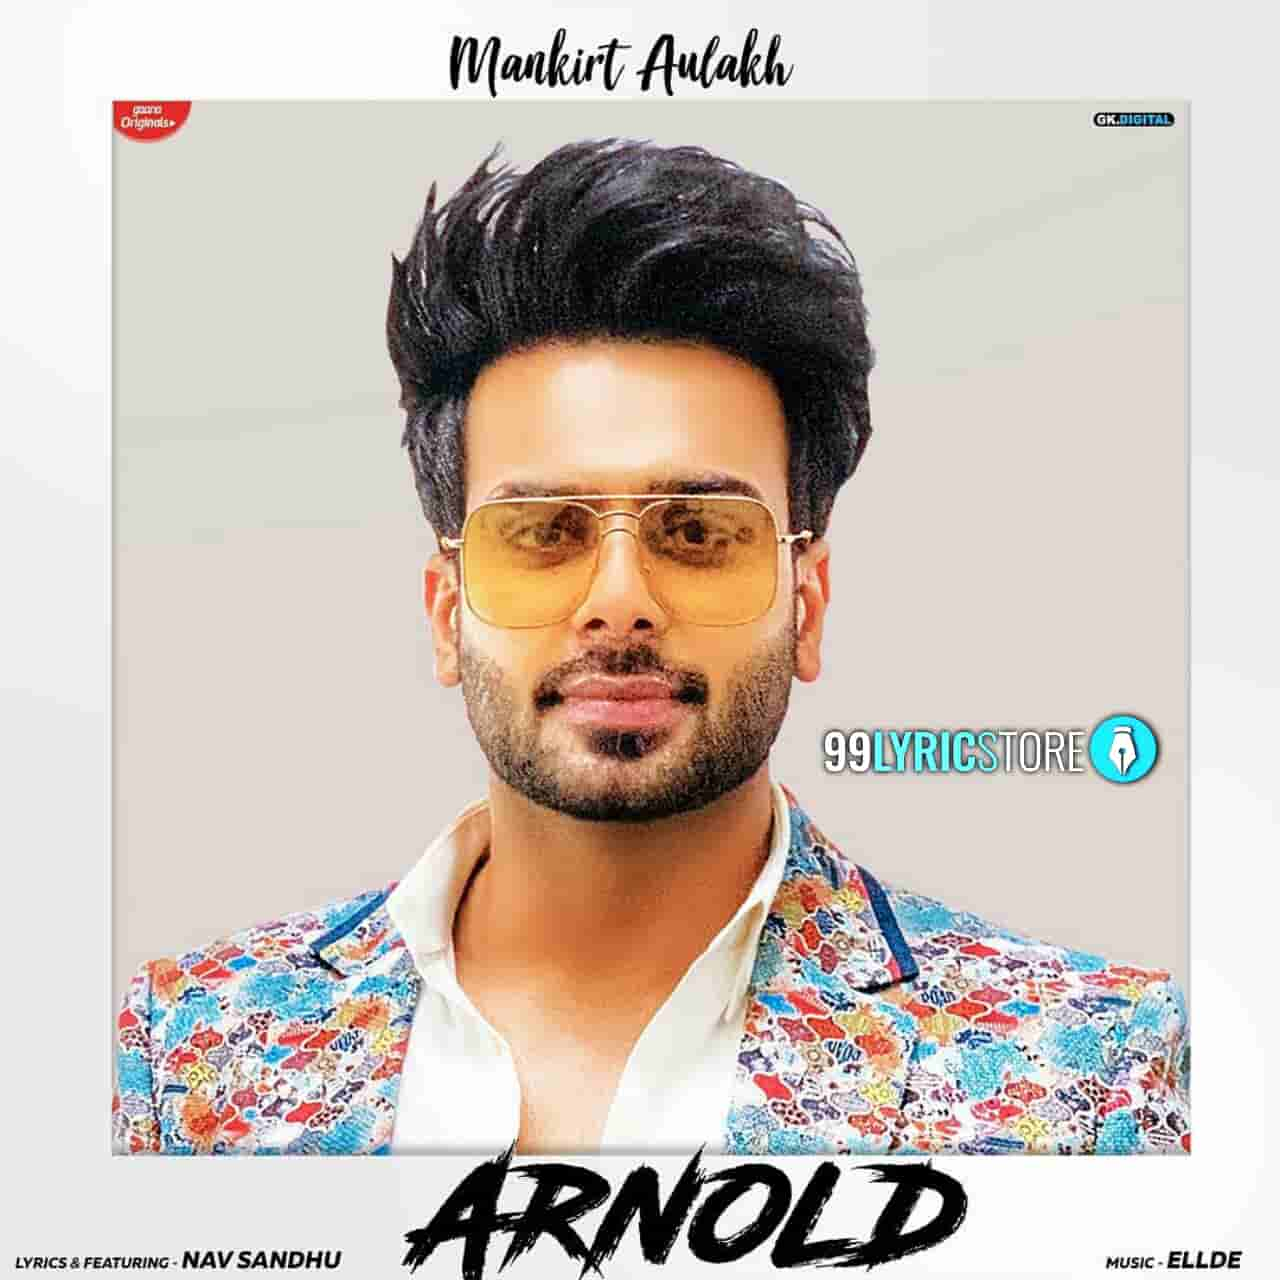 Arnold Punjabi Song Lyrics Sung by Mankirat Aulakh